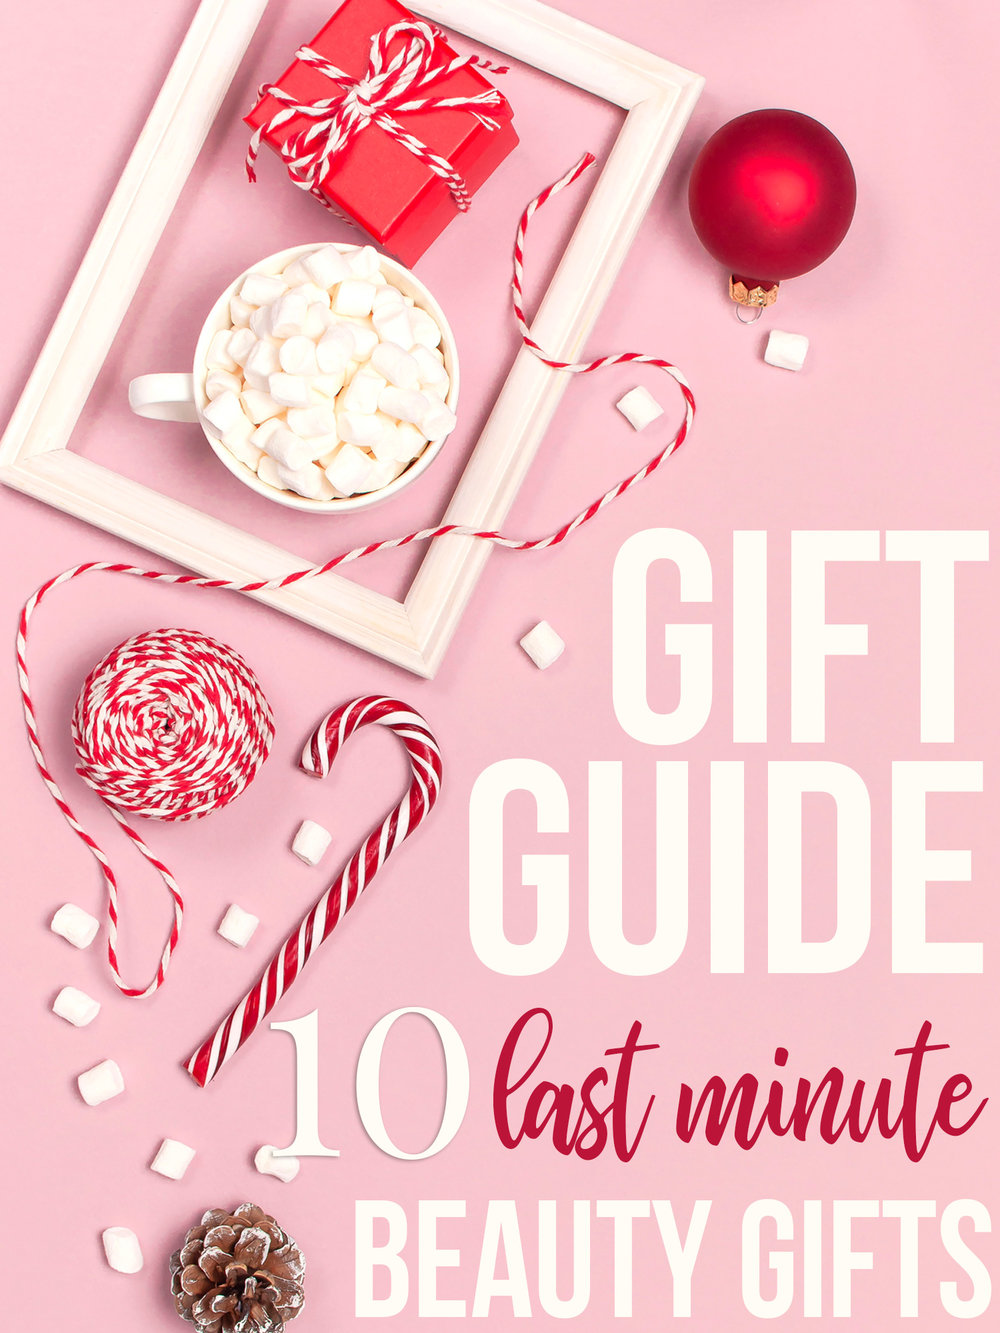 10 Last Minute Beauty Gifts She will LOVE